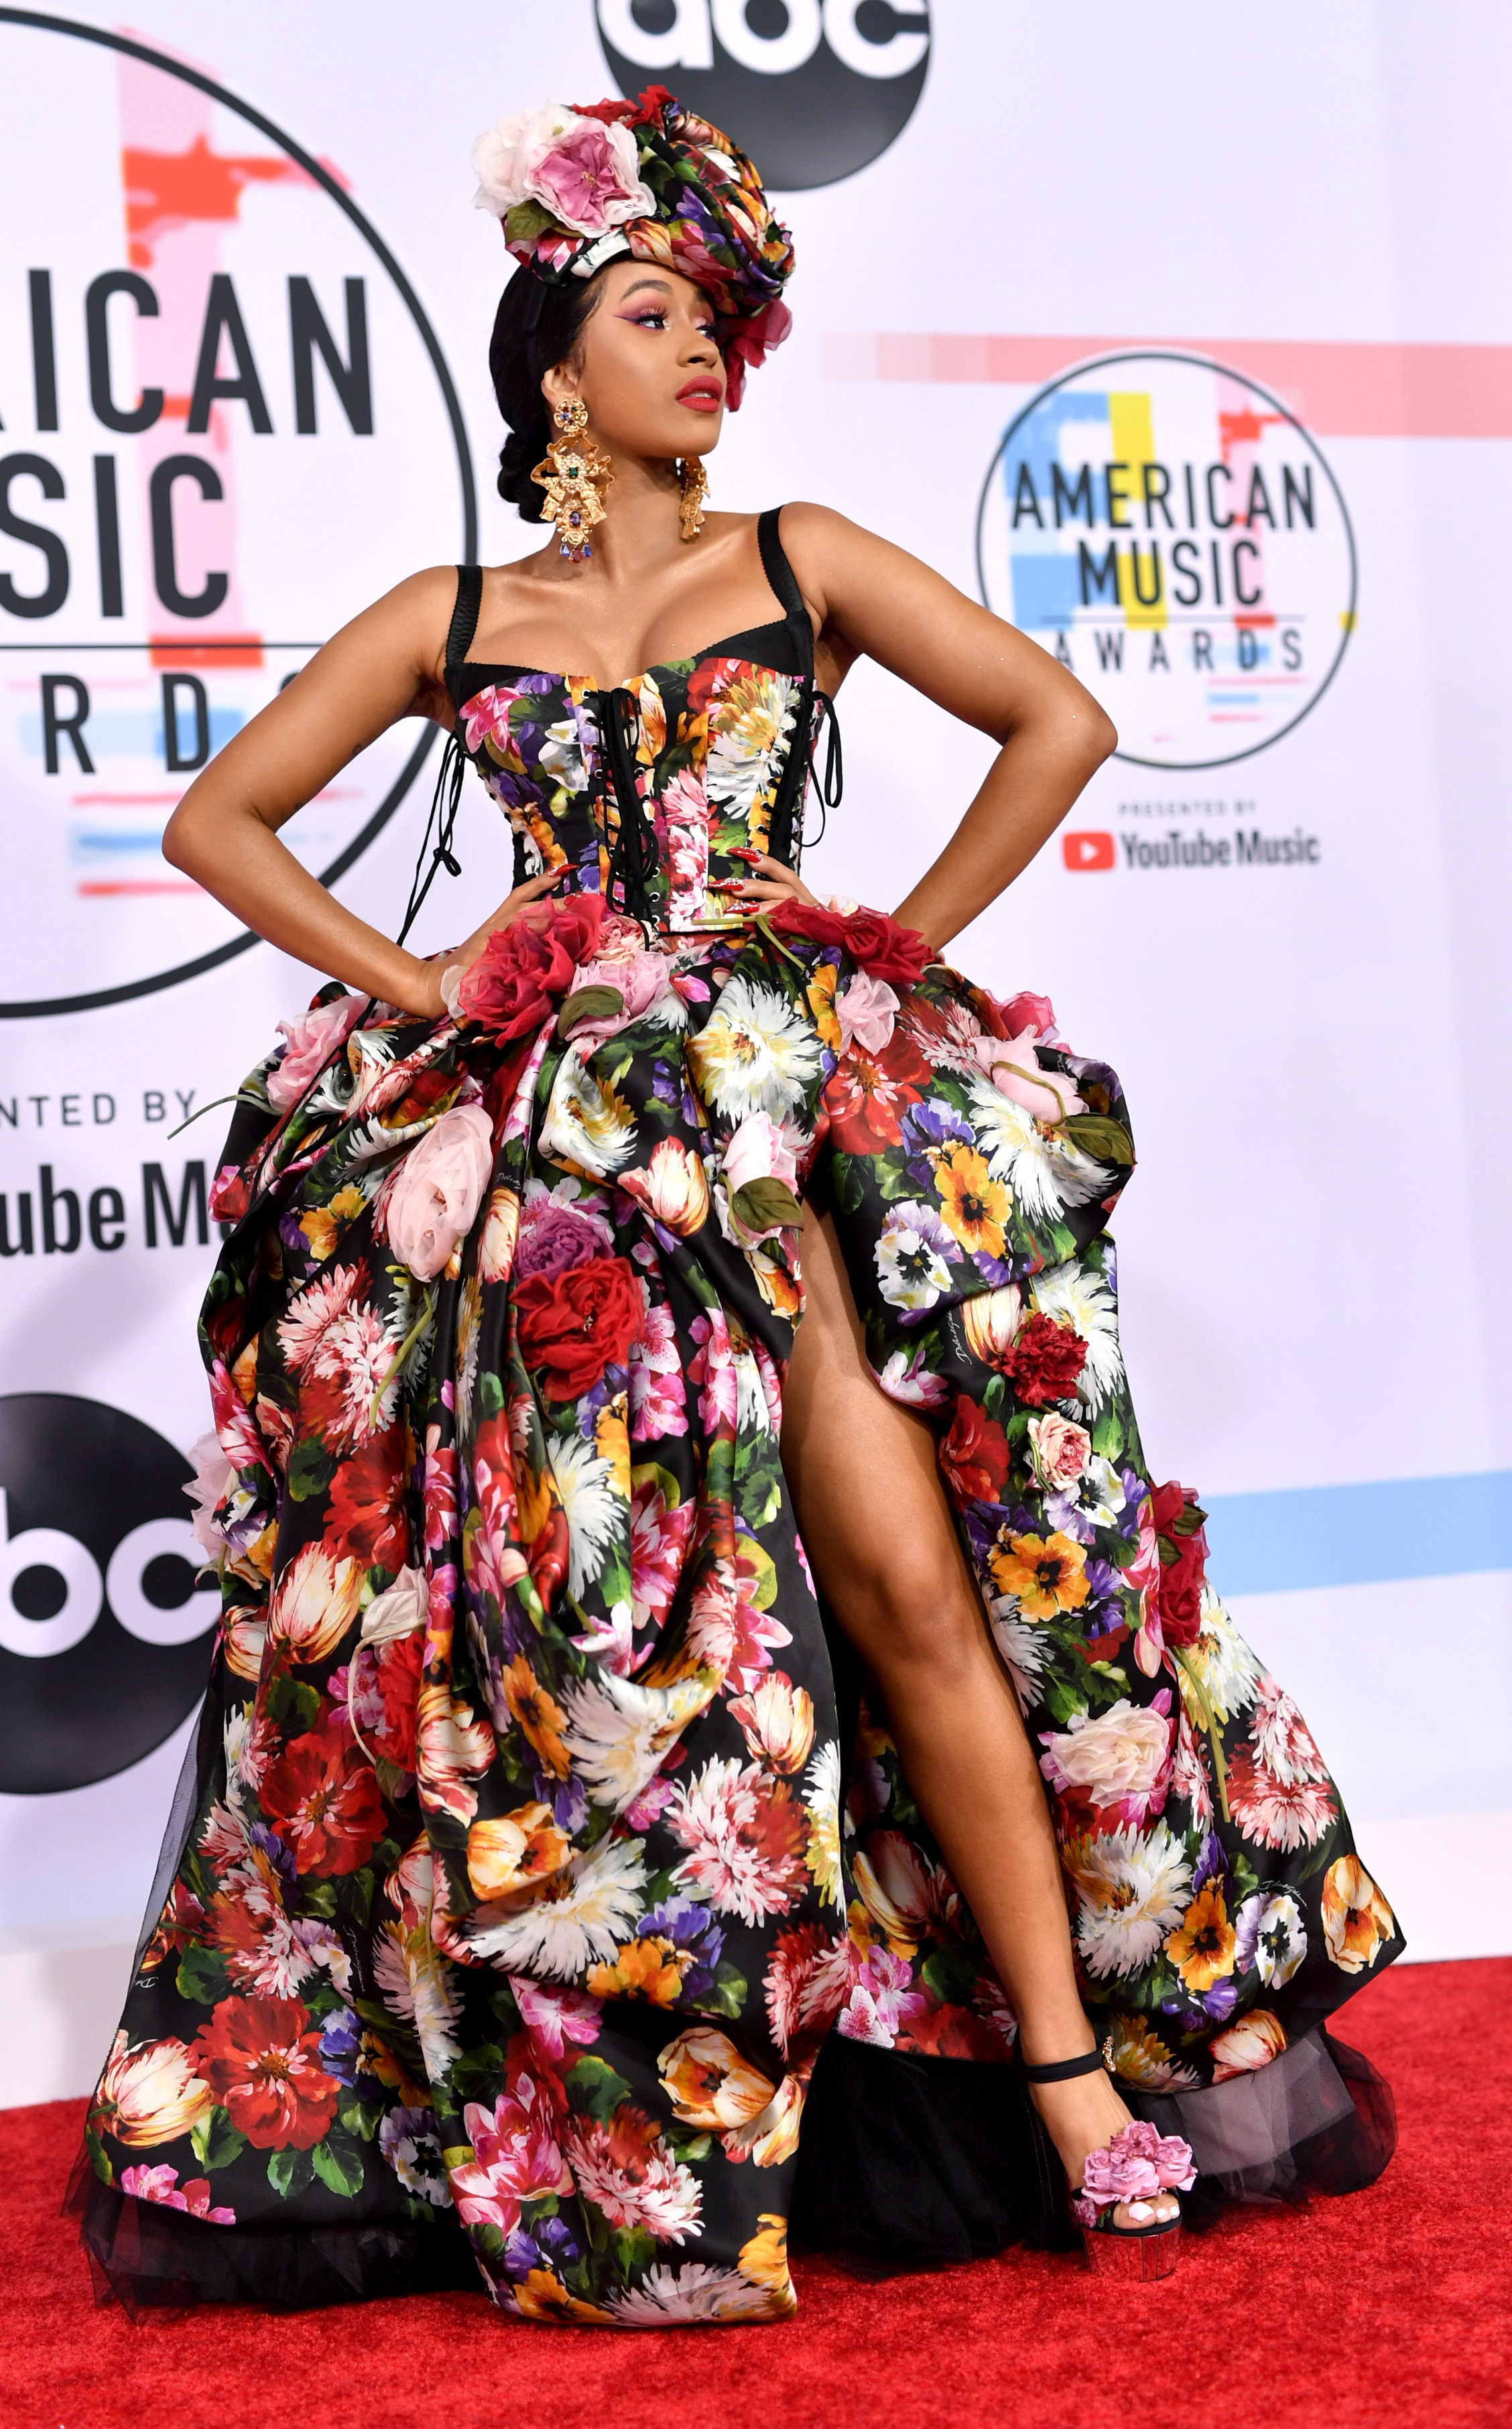 Cardi B attends the 2018 American Music Awards at Microsoft Theater on October 9, 2018, in Los Angeles, California. (Getty Images)